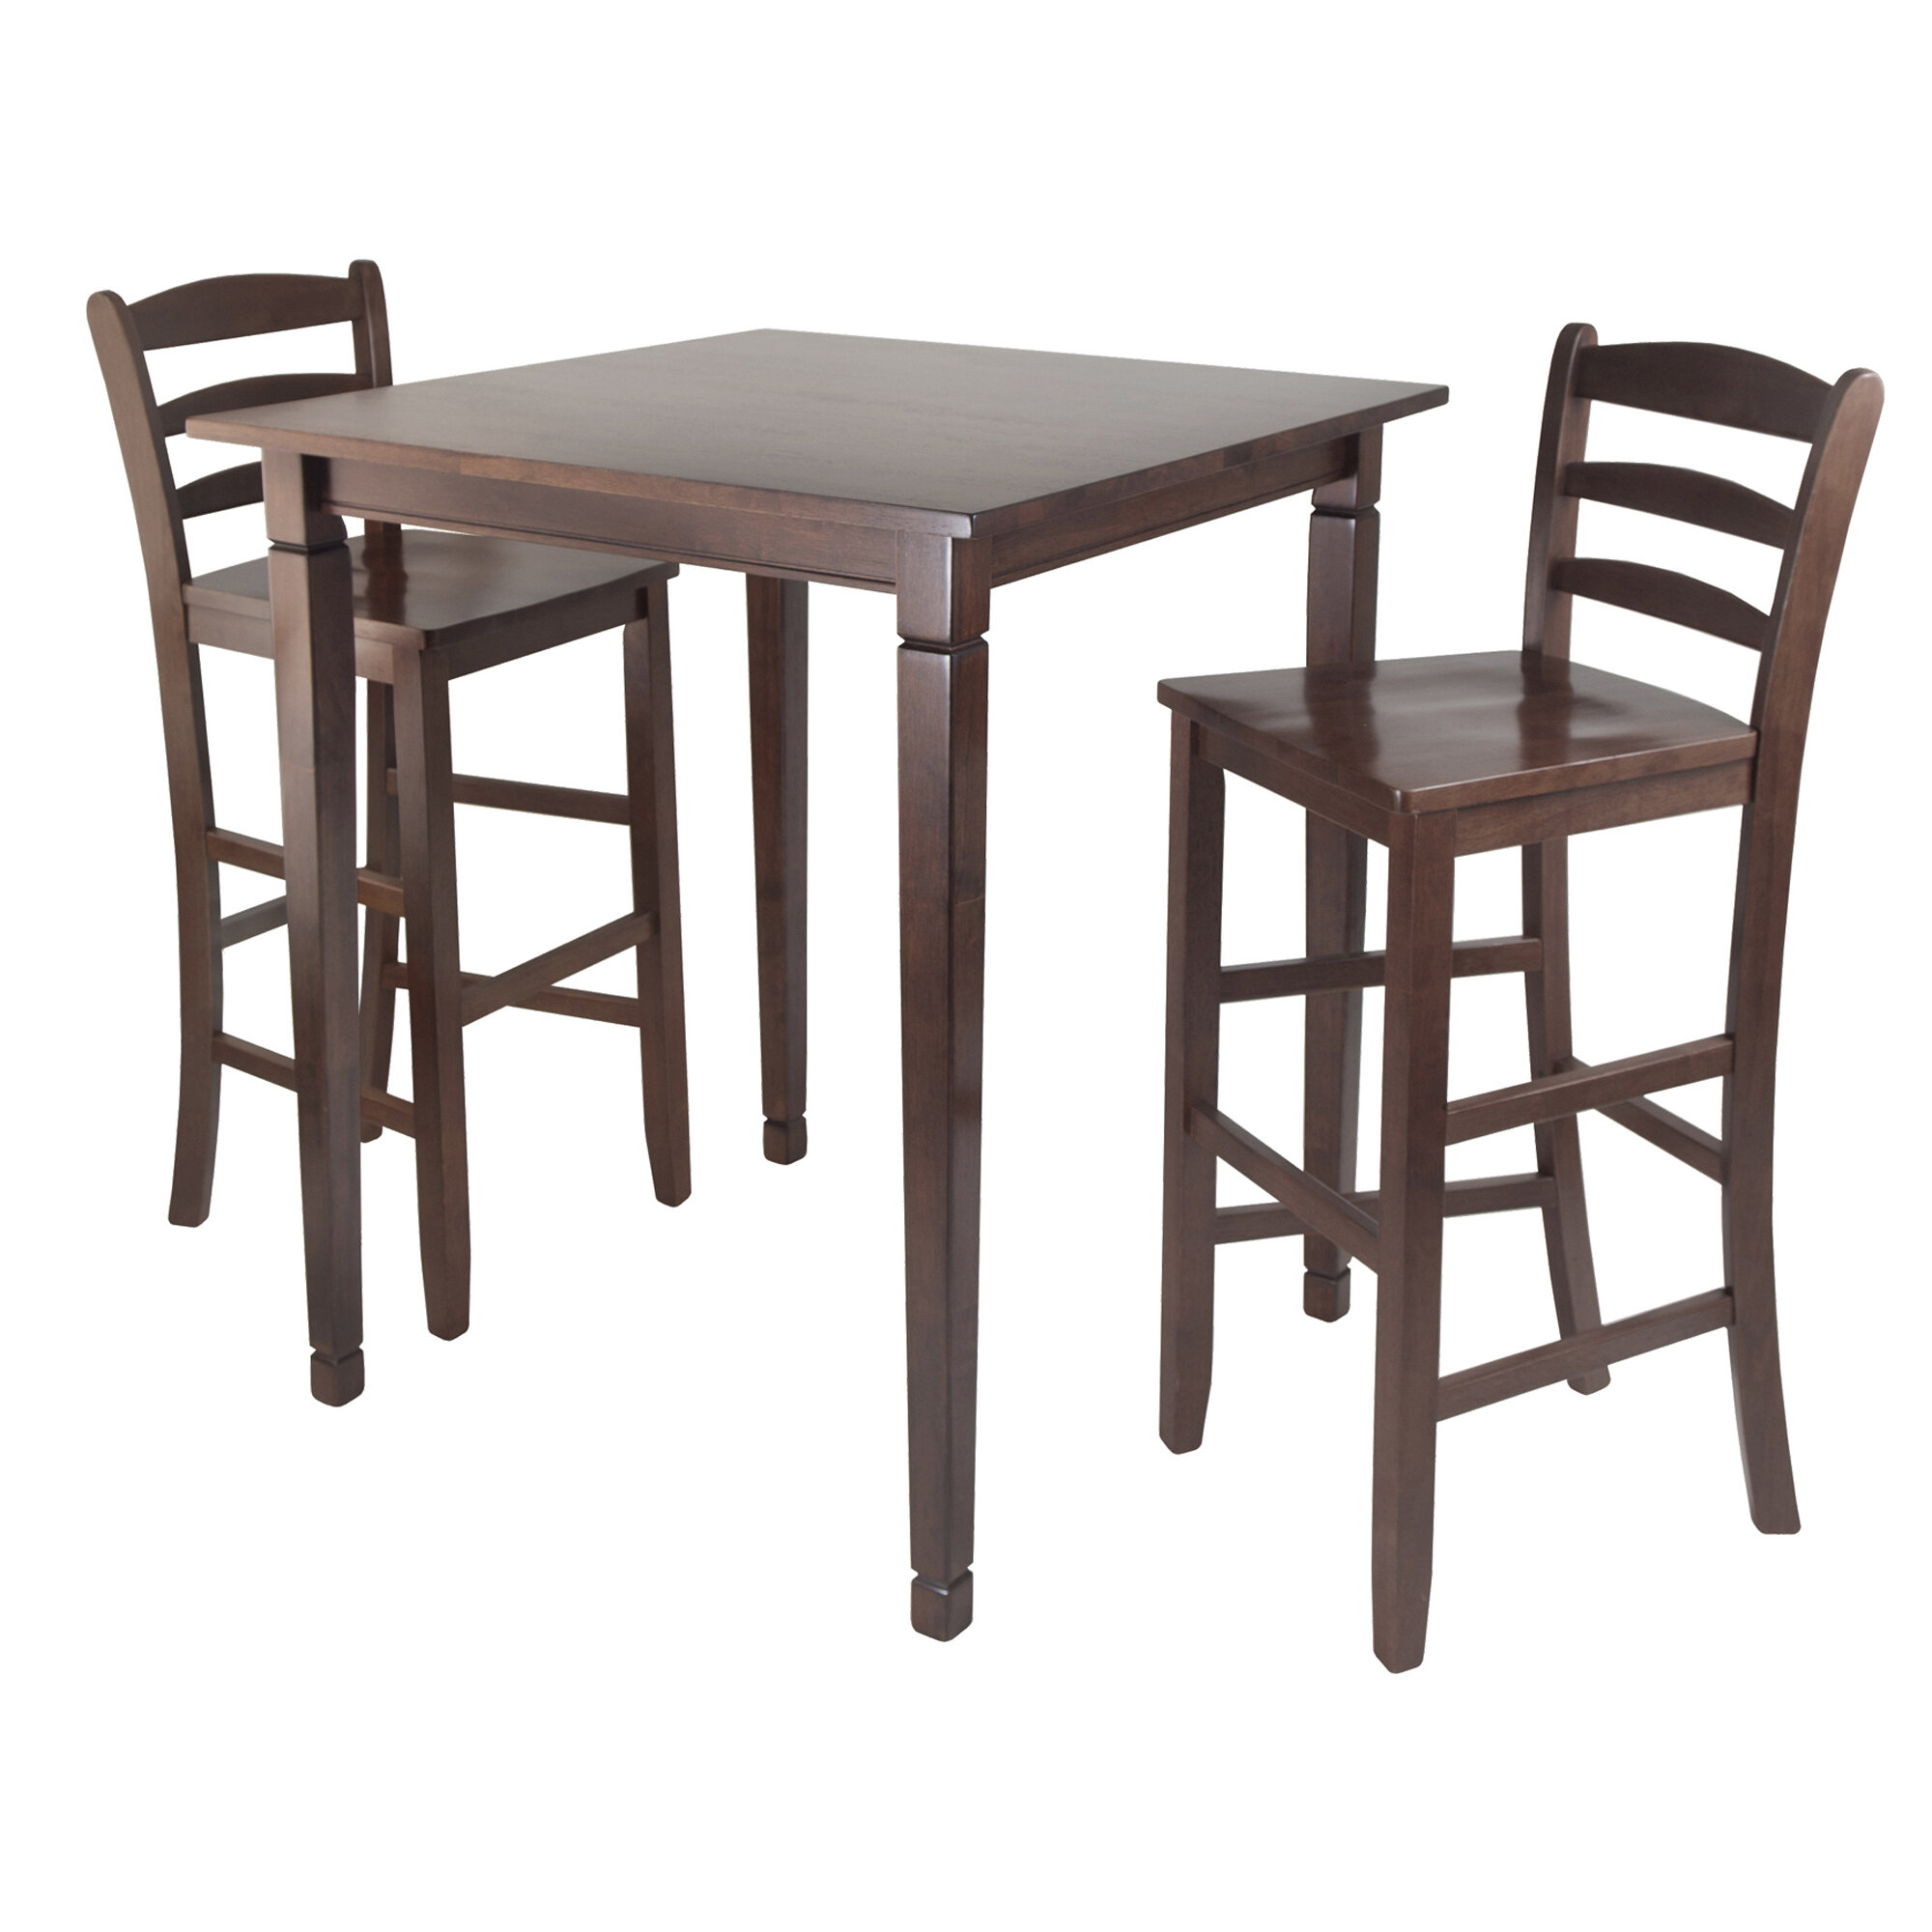 Hemphill 3 Piece Counter Height Pub Table Set With Most Current Bettencourt 3 Piece Counter Height Solid Wood Dining Sets (Photo 6 of 20)